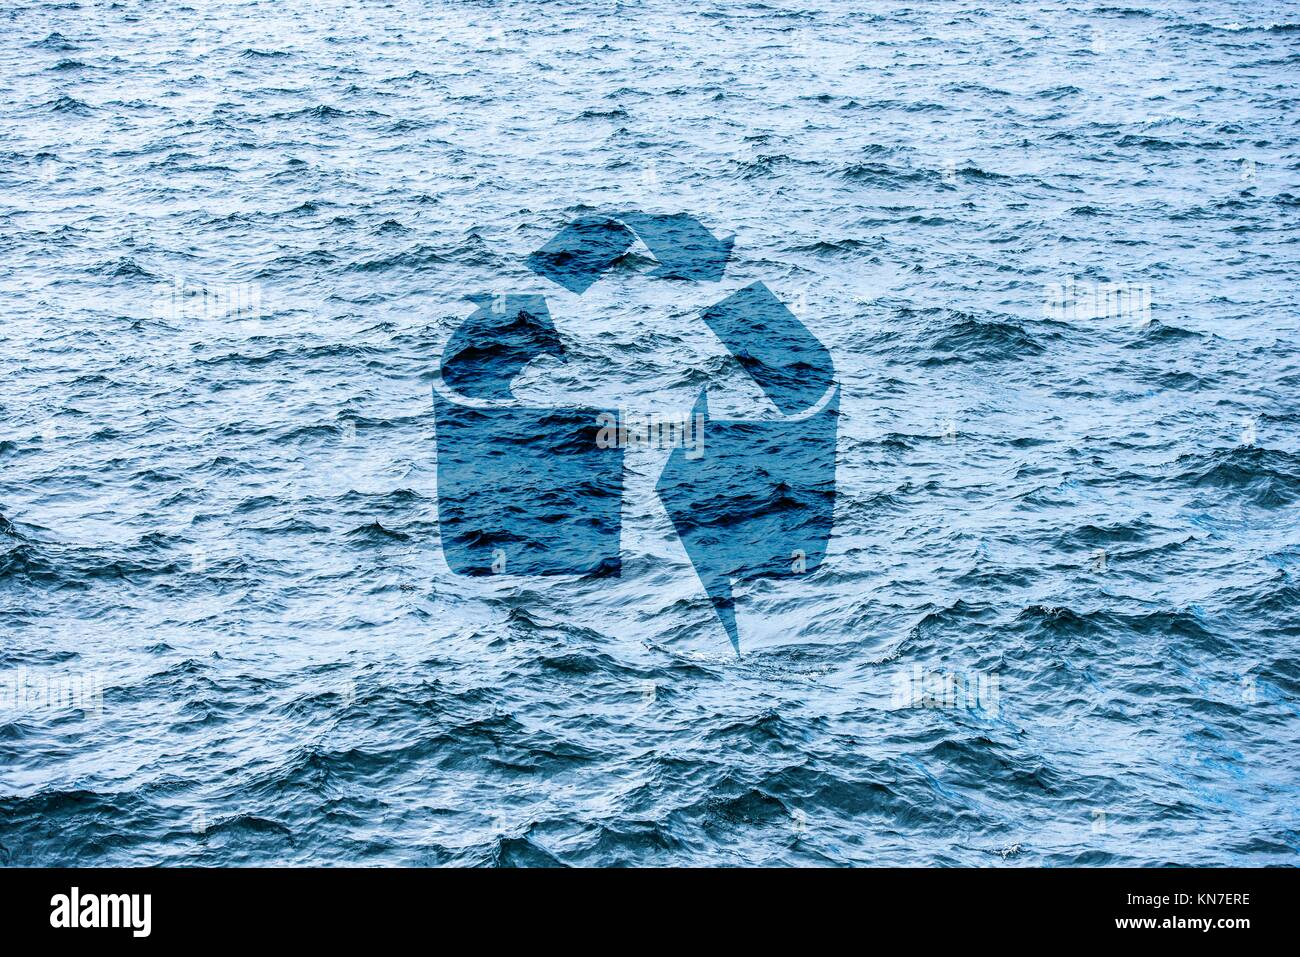 Recycle symbol on ocean surface. Concept of environment, eco awareness and saving the sea. - Stock Image